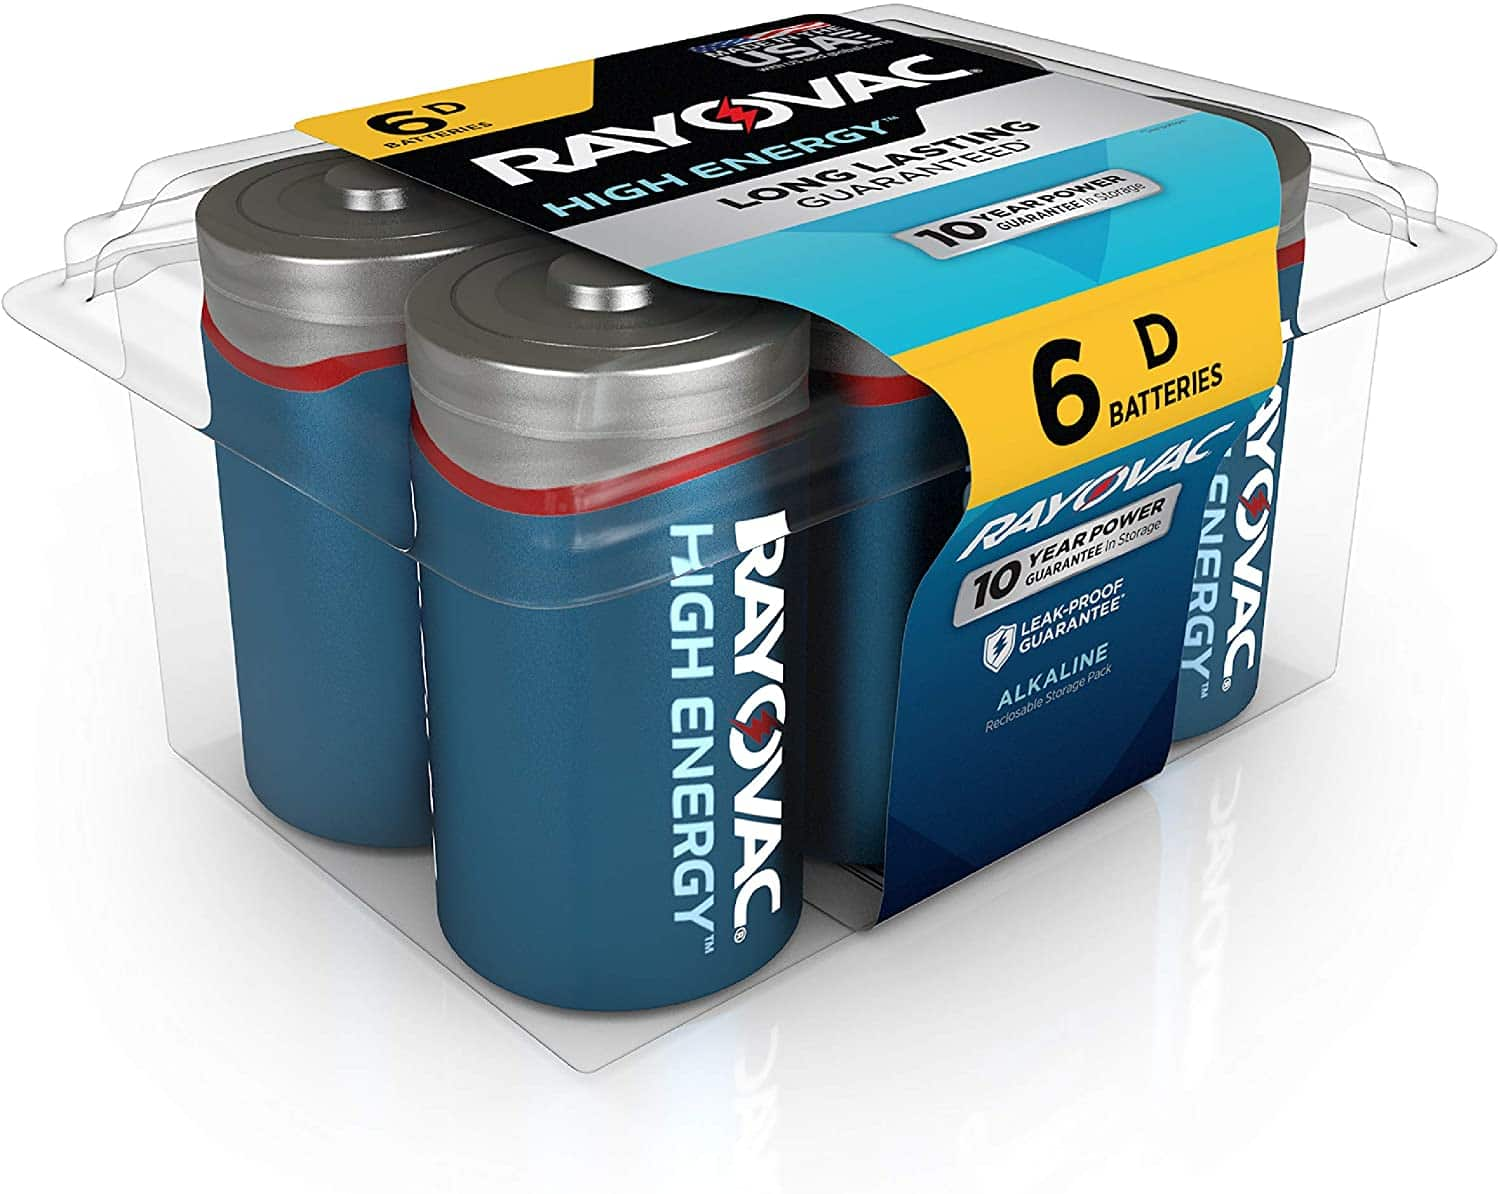 Rayovac D Batteries (6 Battery Count) $4 + FS with S&S